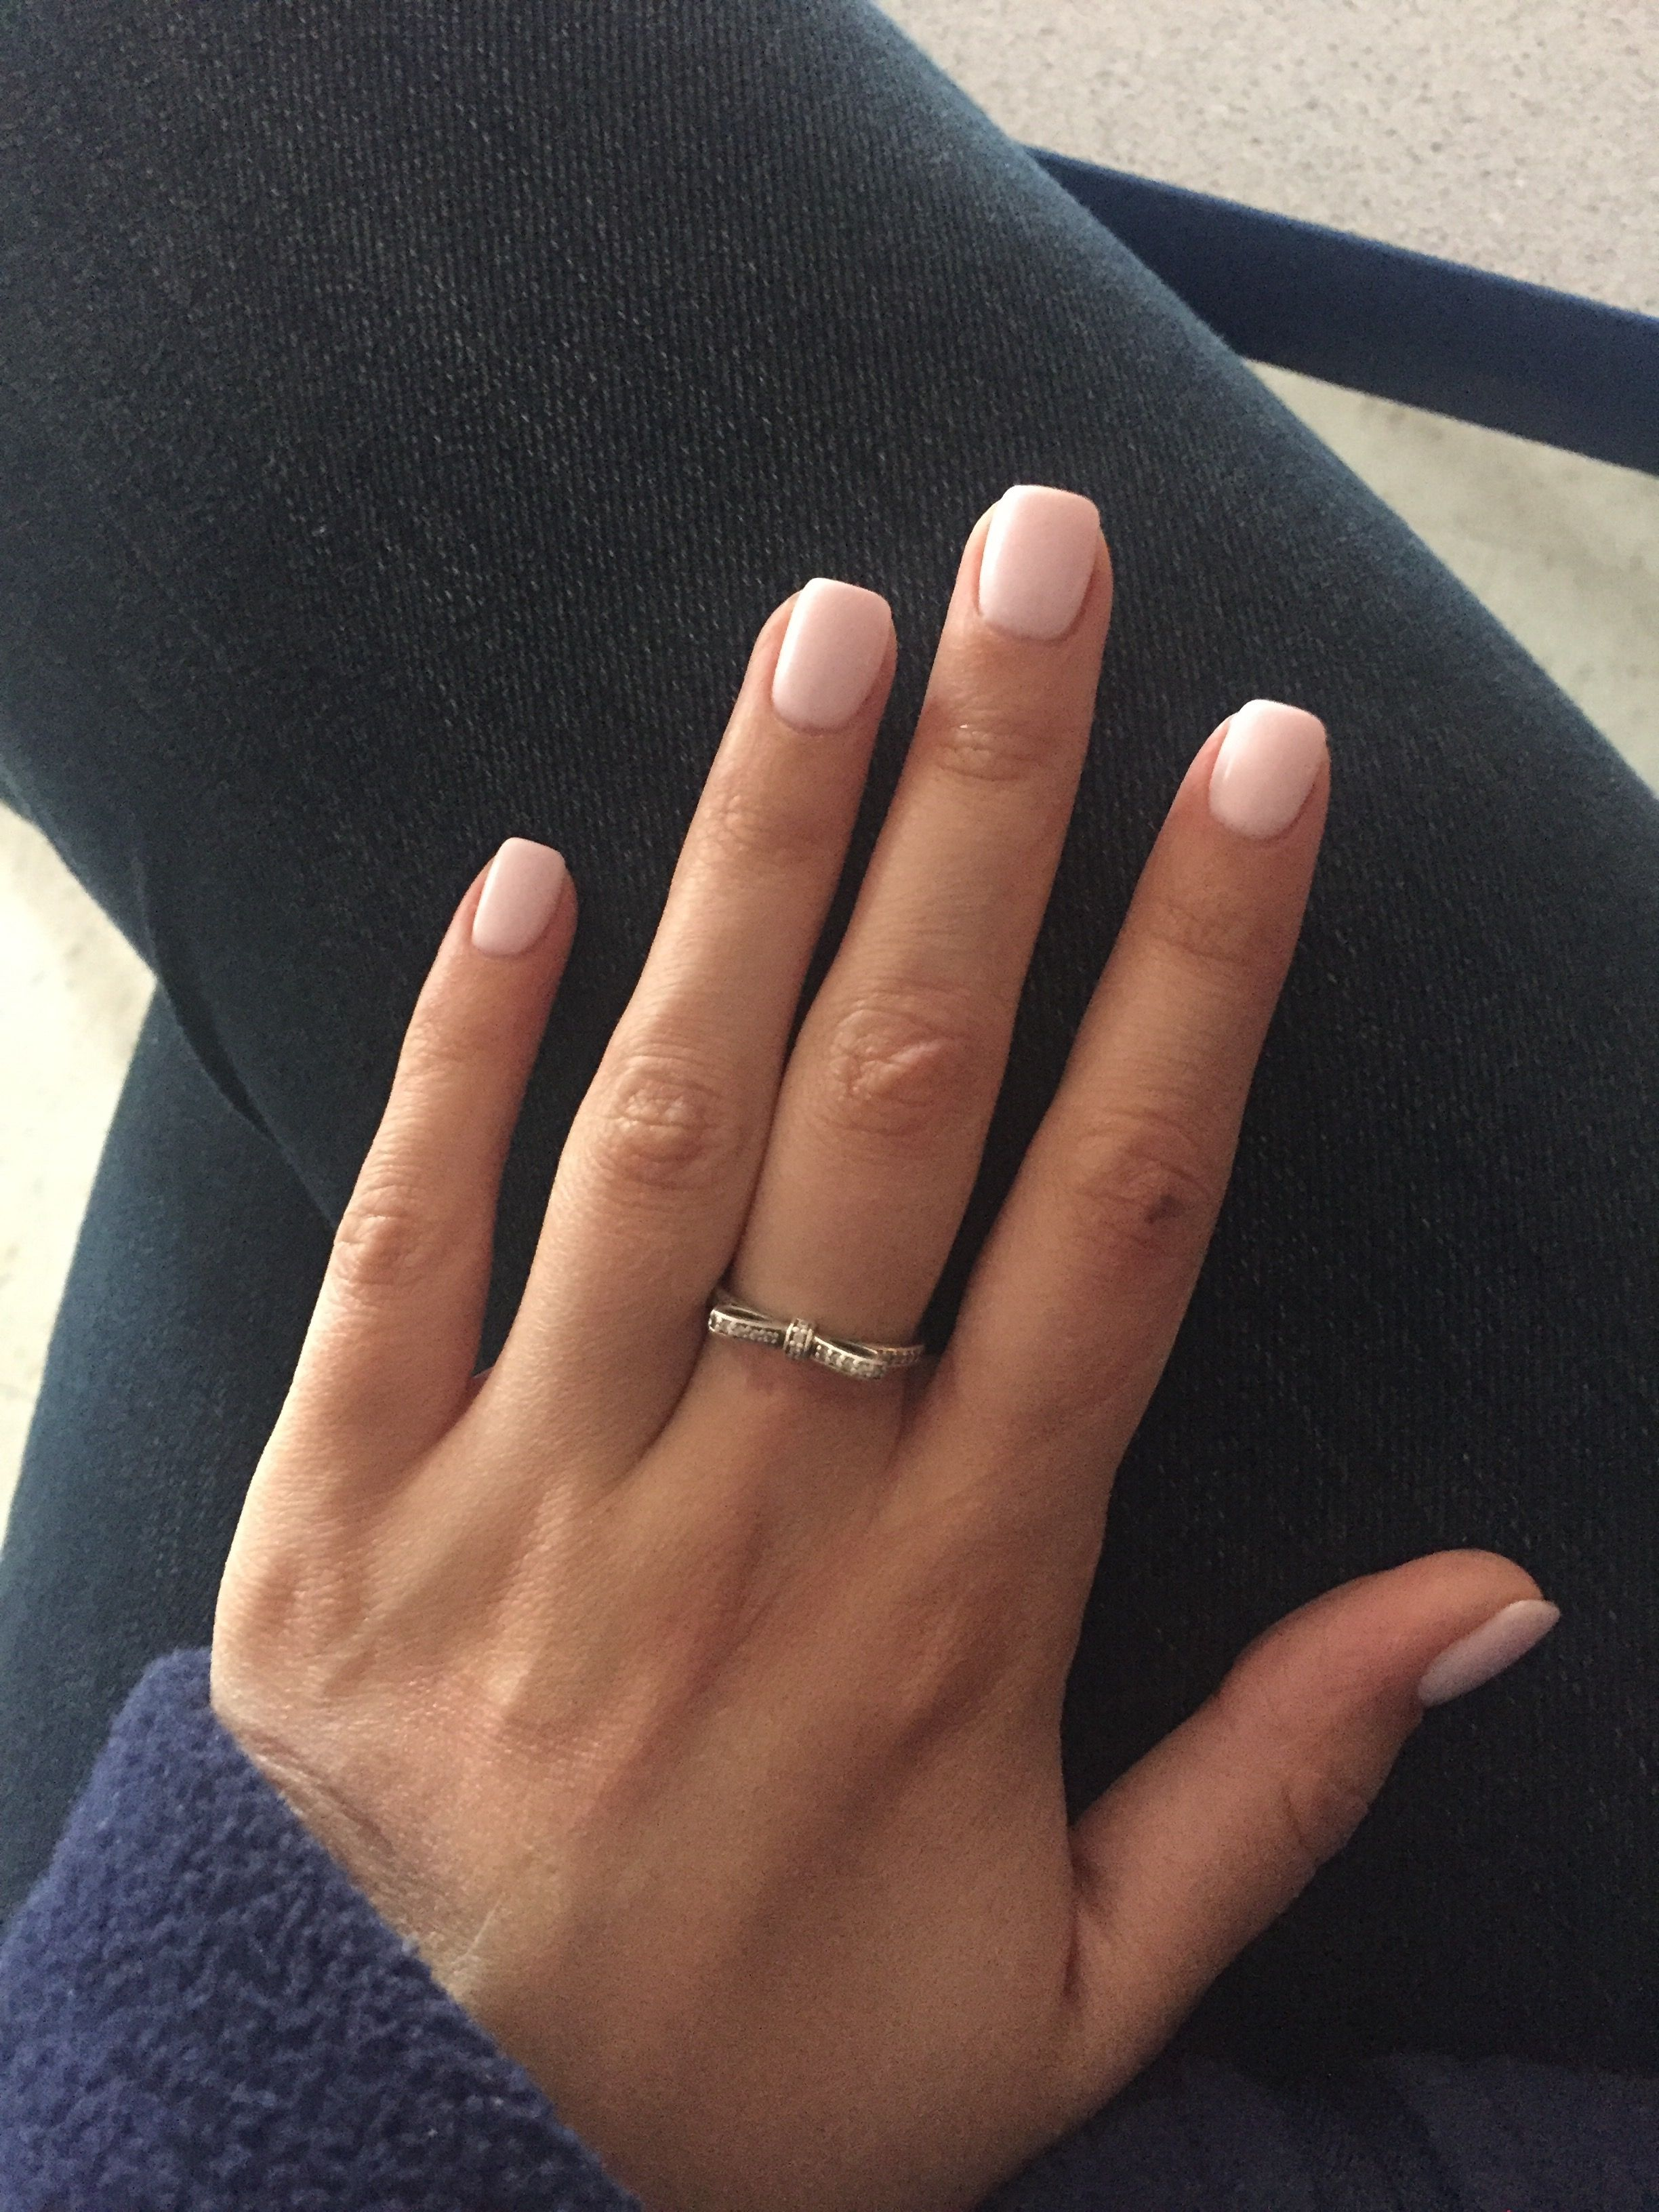 Short Pink Square Acrylic Nails Square Acrylic Nails Short Acrylic Nails Short Gel Nails